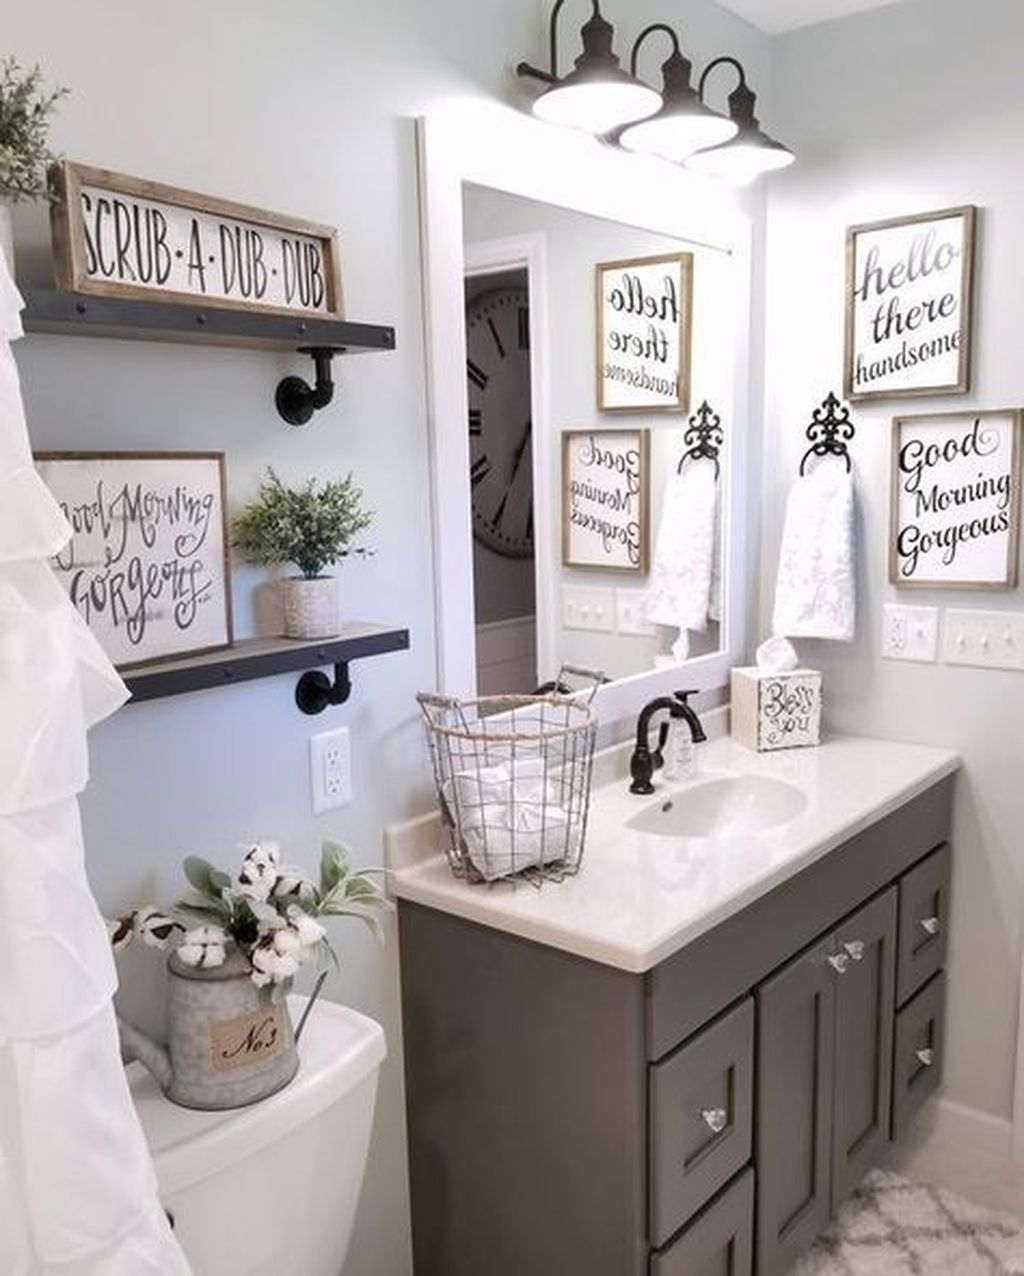 50 Lovely Bathroom Decor Ideas With Farmhouse Style Small Farmhouse Bathroom Farmhouse Bathroom Decor Modern Farmhouse Bathroom